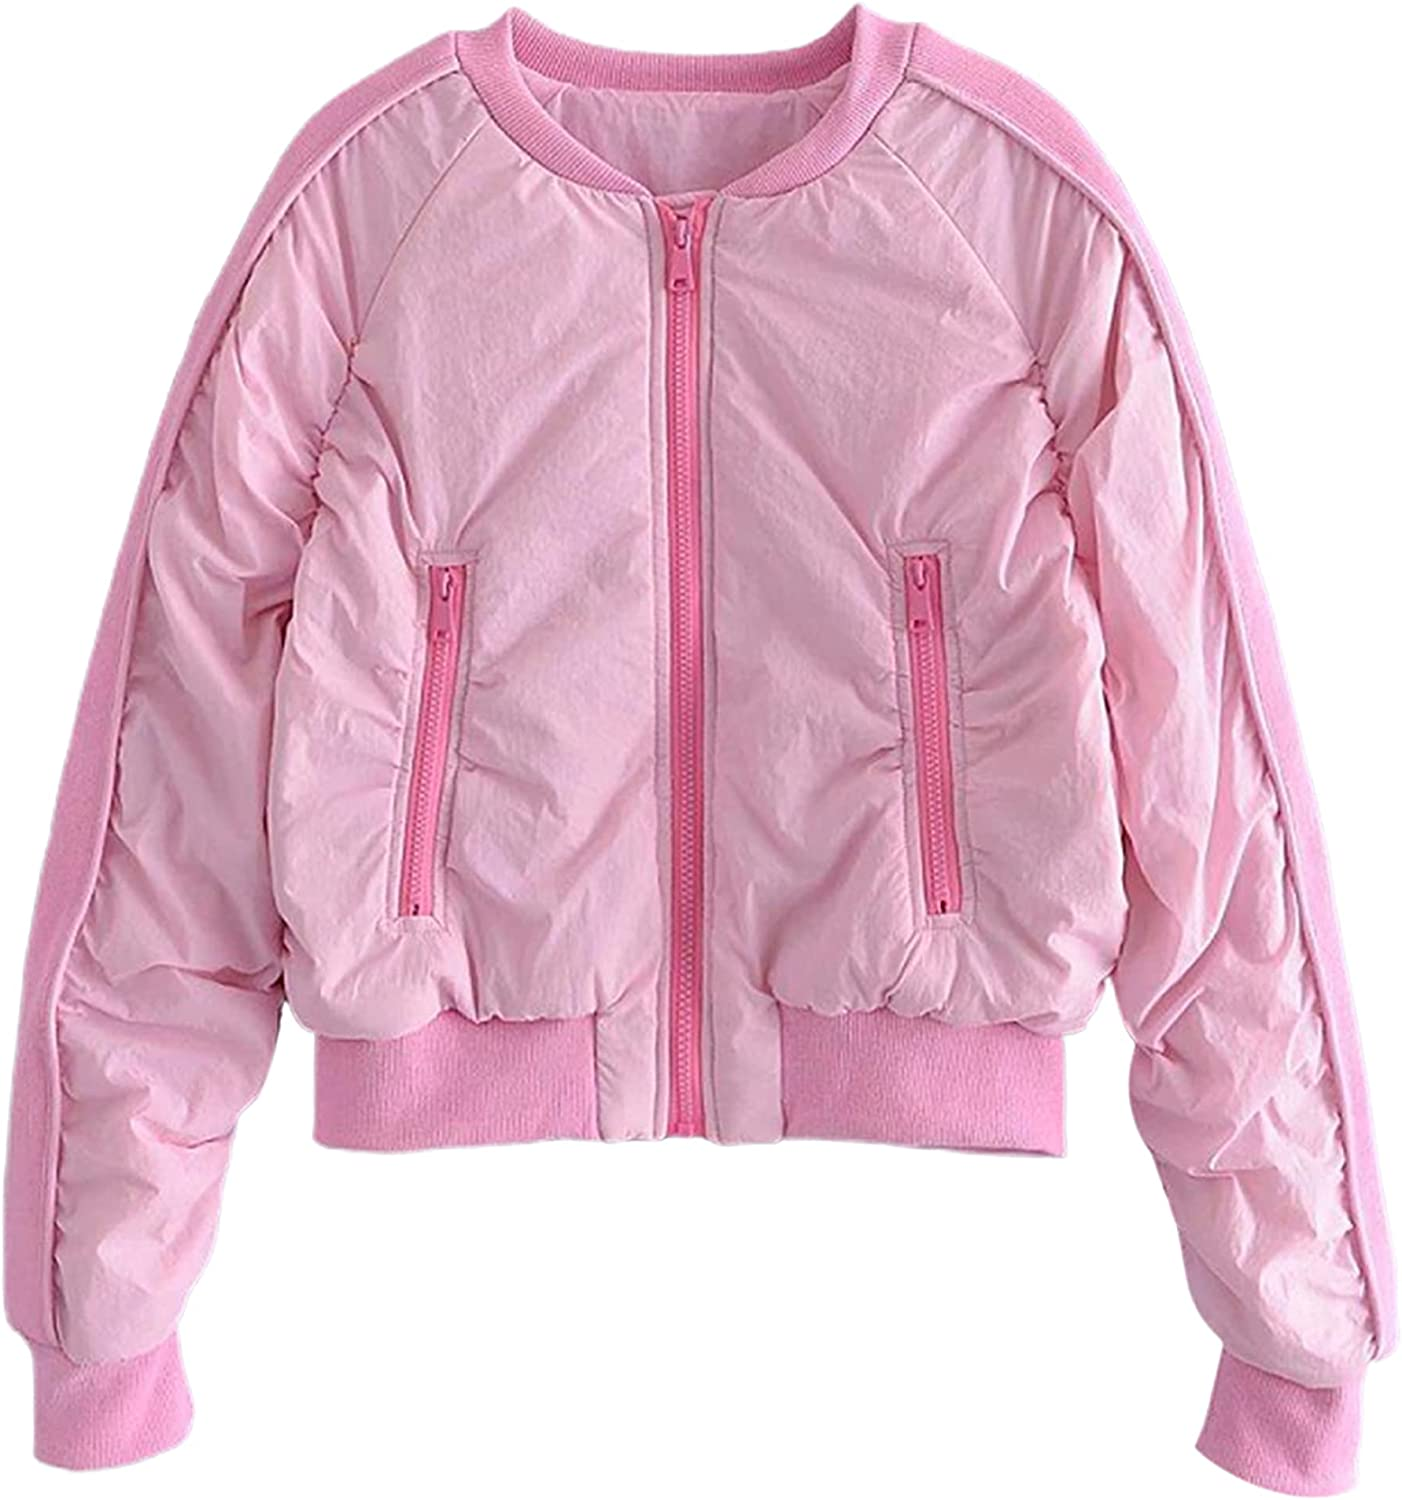 SCUSTY Women's Lightweight Ruched Patchwork Quilted Bomber Jacket Coat Outerwear